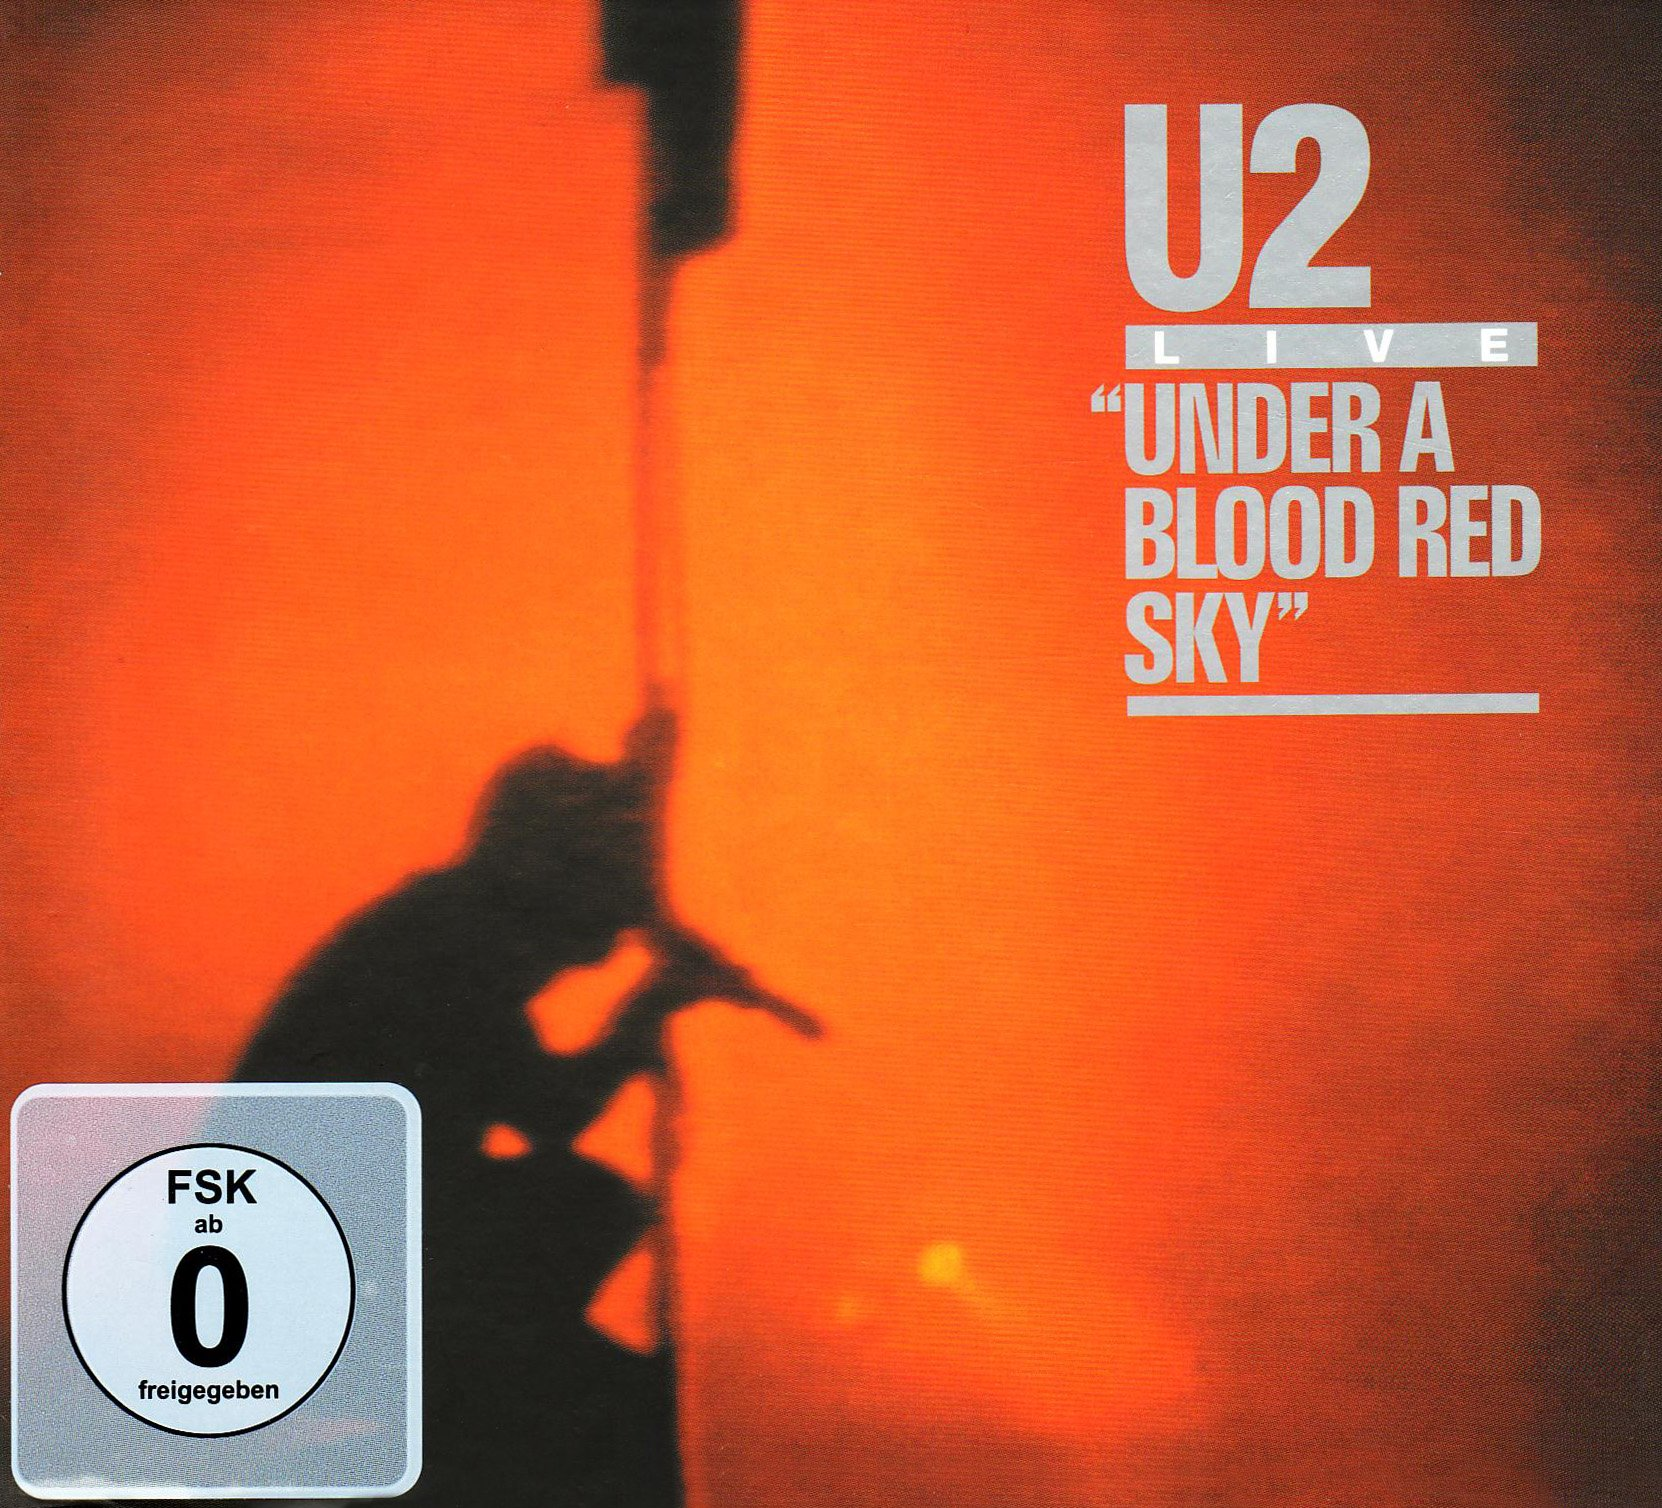 Under a Blood Red Sky - Deluxe Edition CD/DVD by Interscope